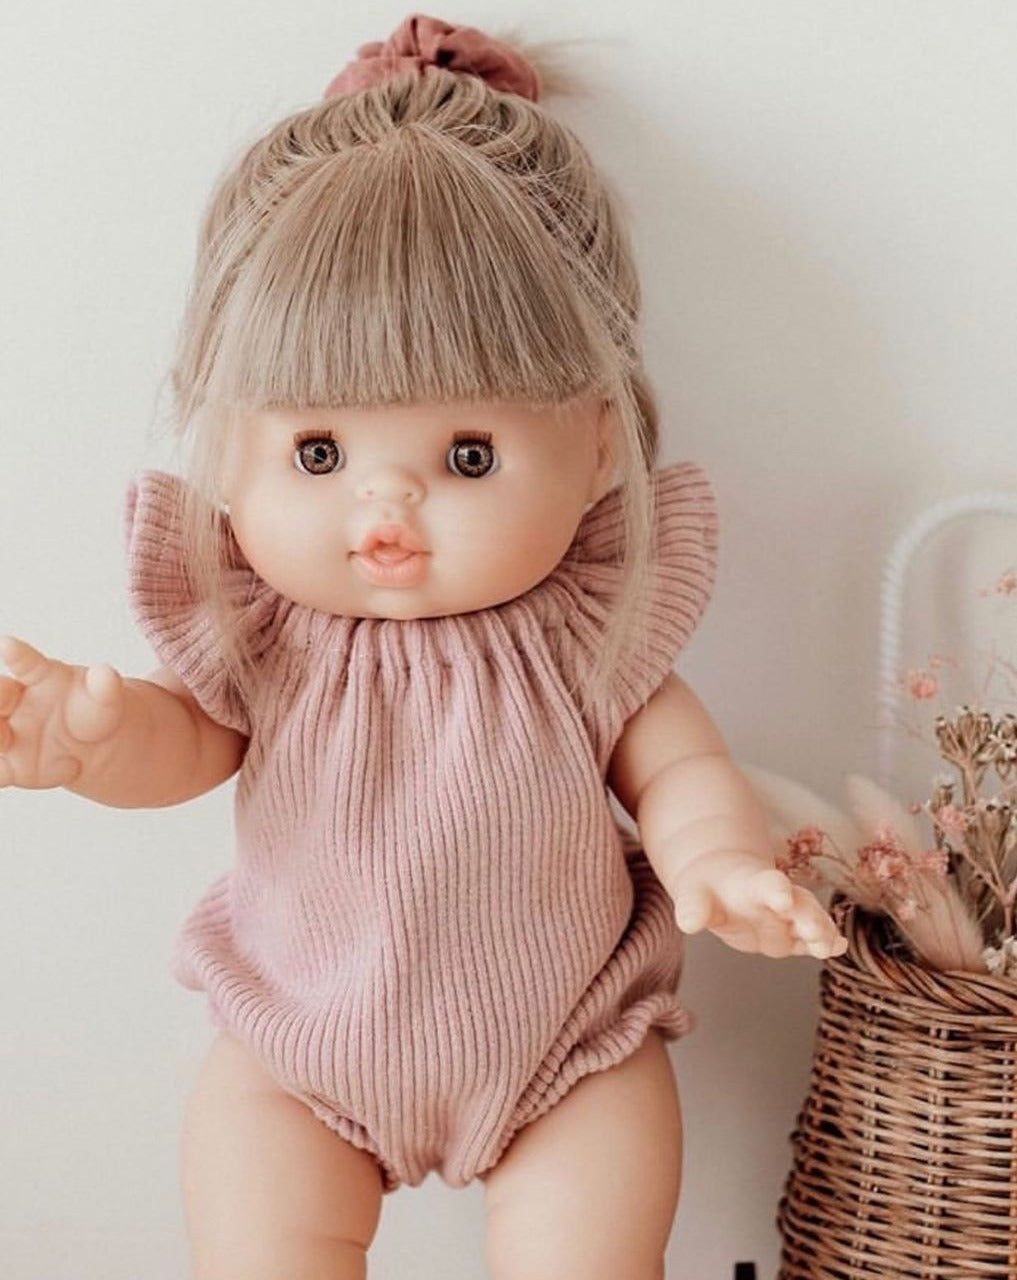 Minikane Zoe Dolls | Cute Babydolls for toddlers | Dolls with hair, anatomically correct babydolls.